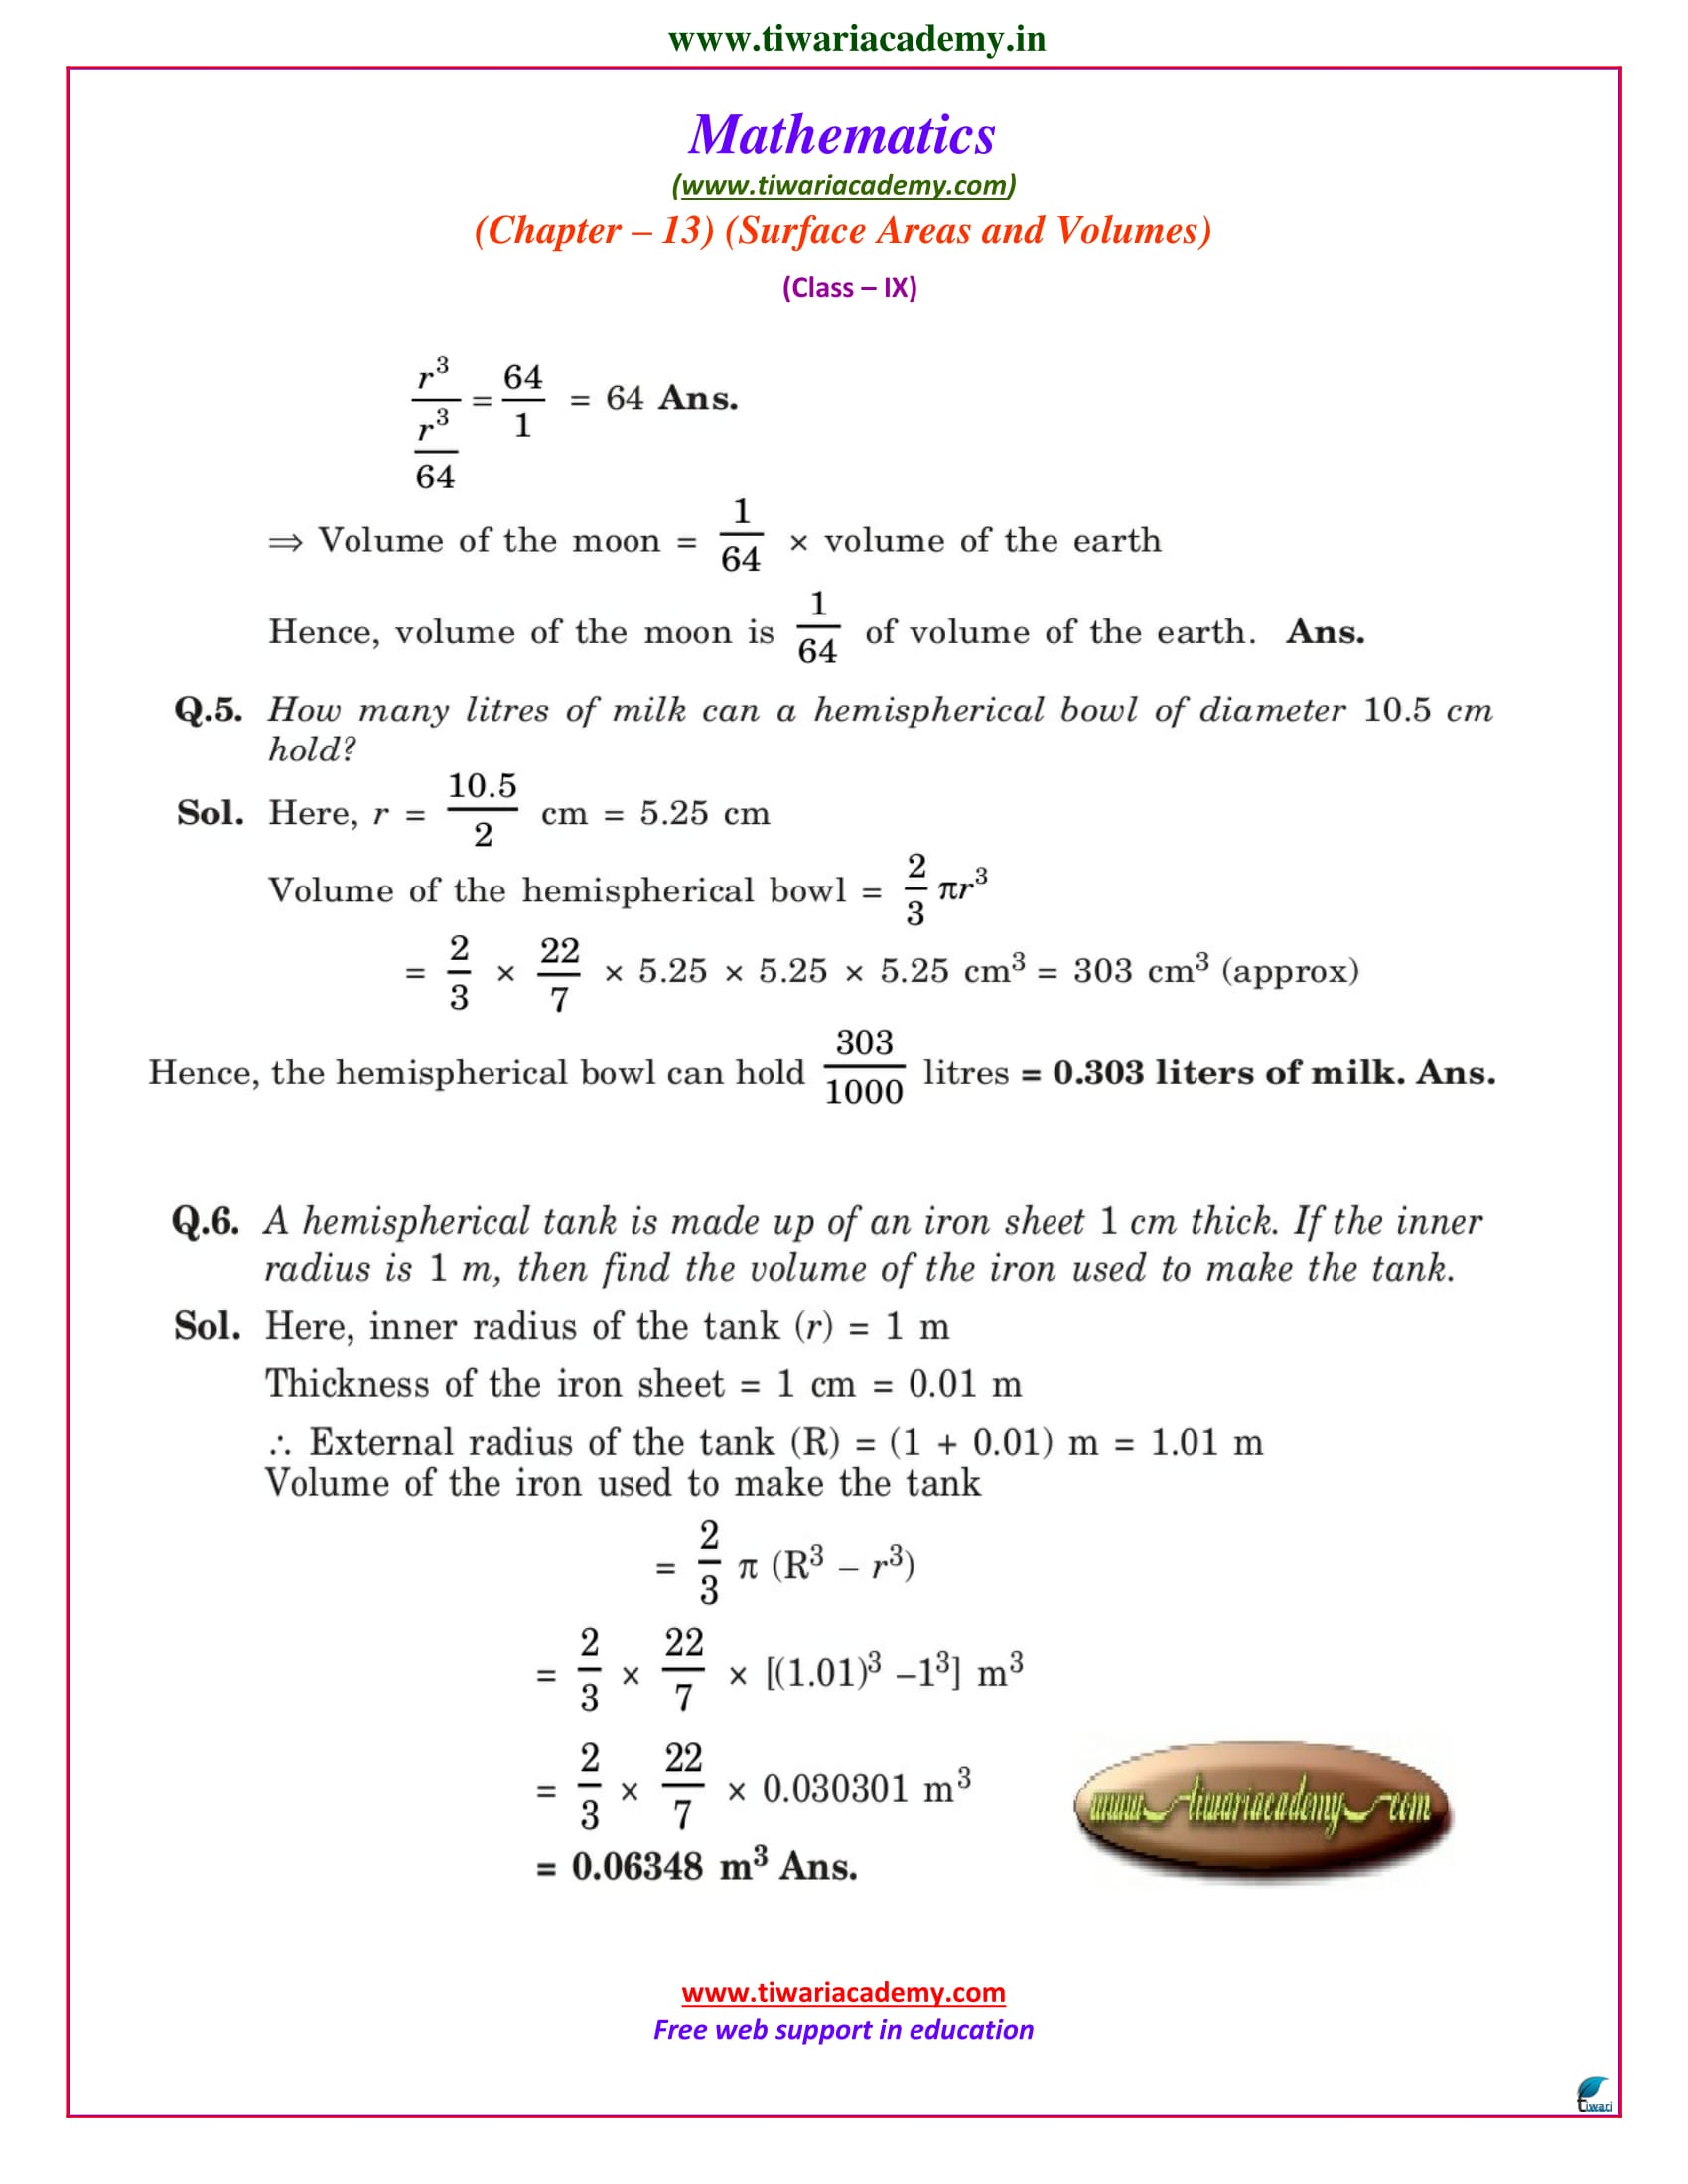 class ix maths solutions exercise 13.8 pdf